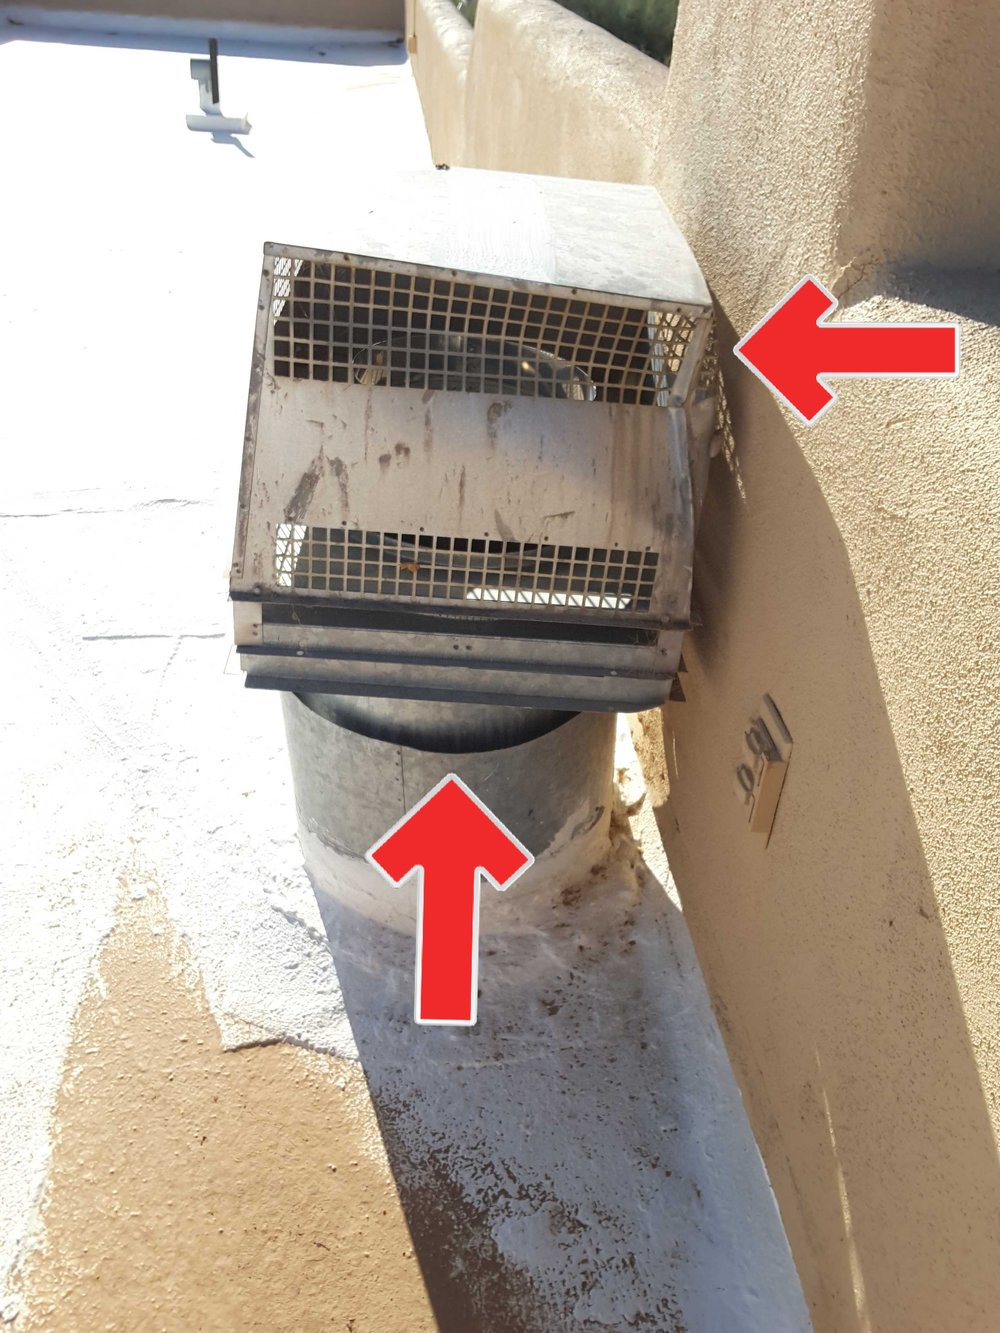 This poorly planned fireplace flue cap is against the parapet wall and has large gaps allowing water entry into chimney chase.